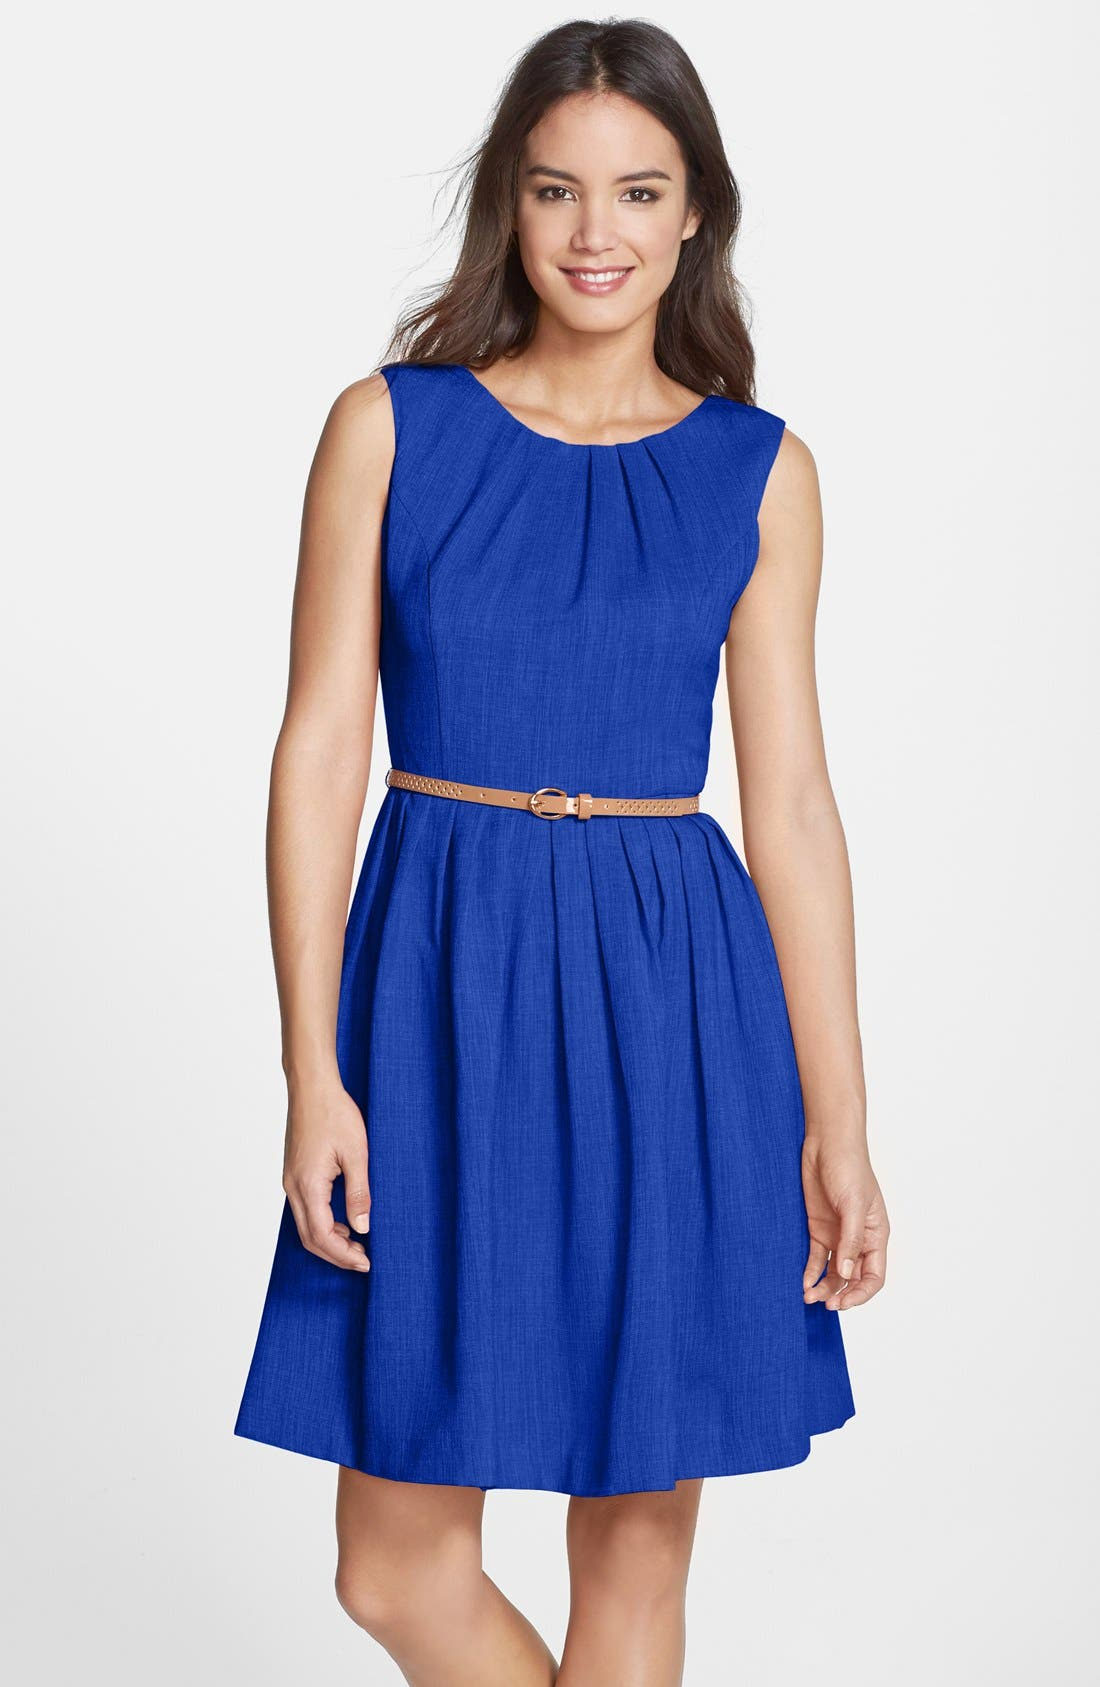 Alternate Image 1 Selected - Ellen Tracy 'Kenya' Belted Pleated Cotton Fit & Flare Dress (Petite)